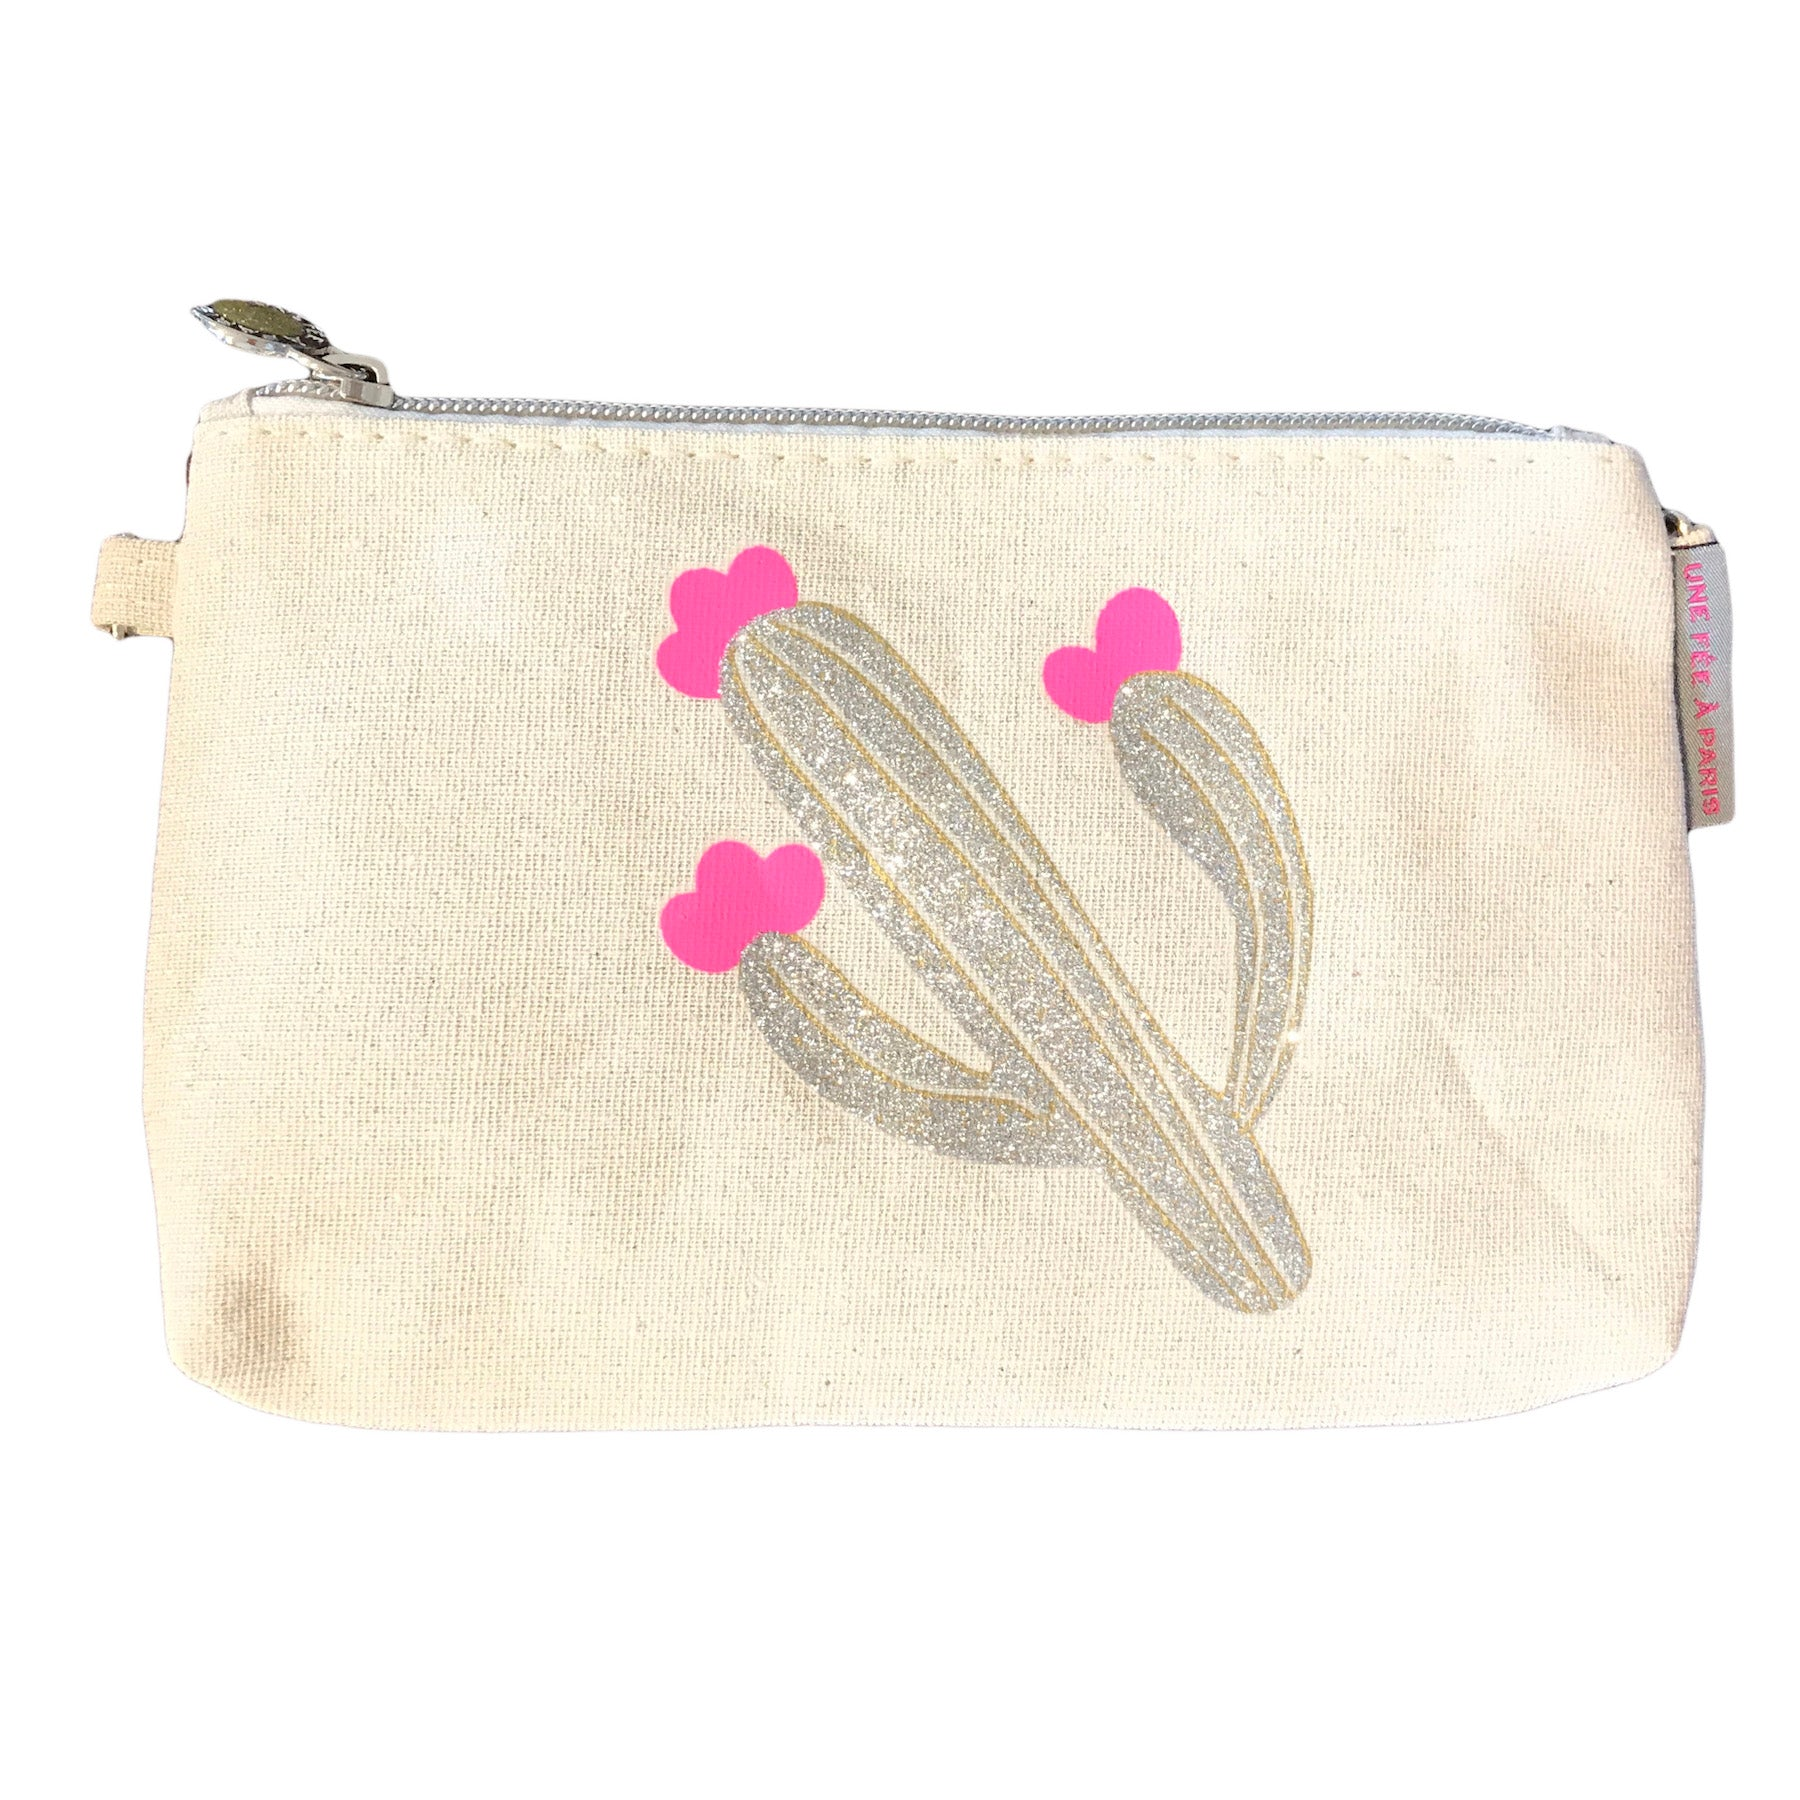 Cactus Canvas Pouch or Cross Body Bag | Une Fee A Paris (France)